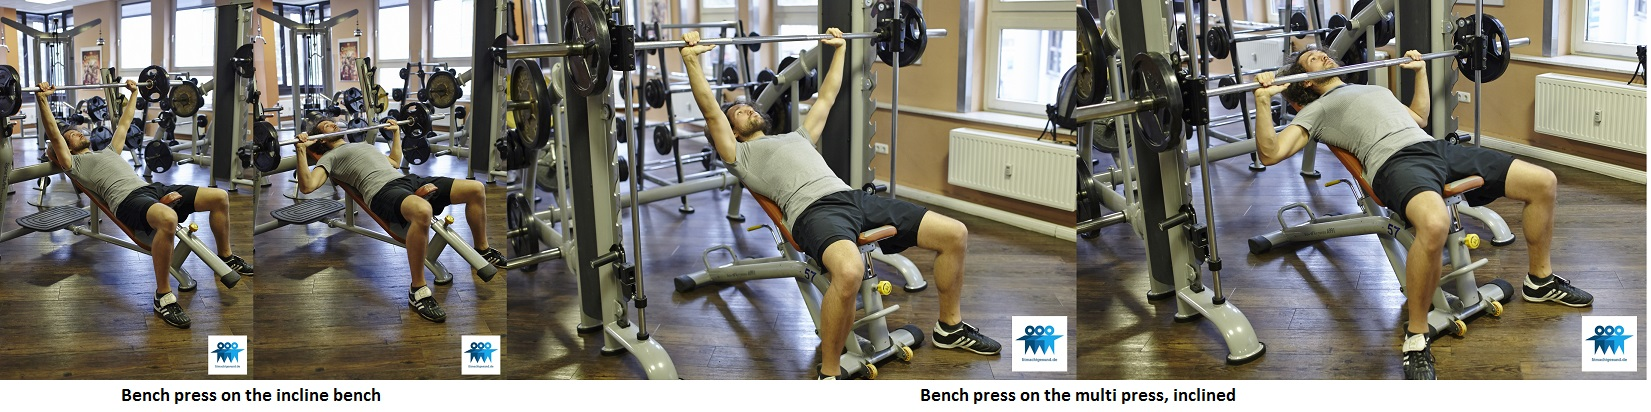 Bench press inclined